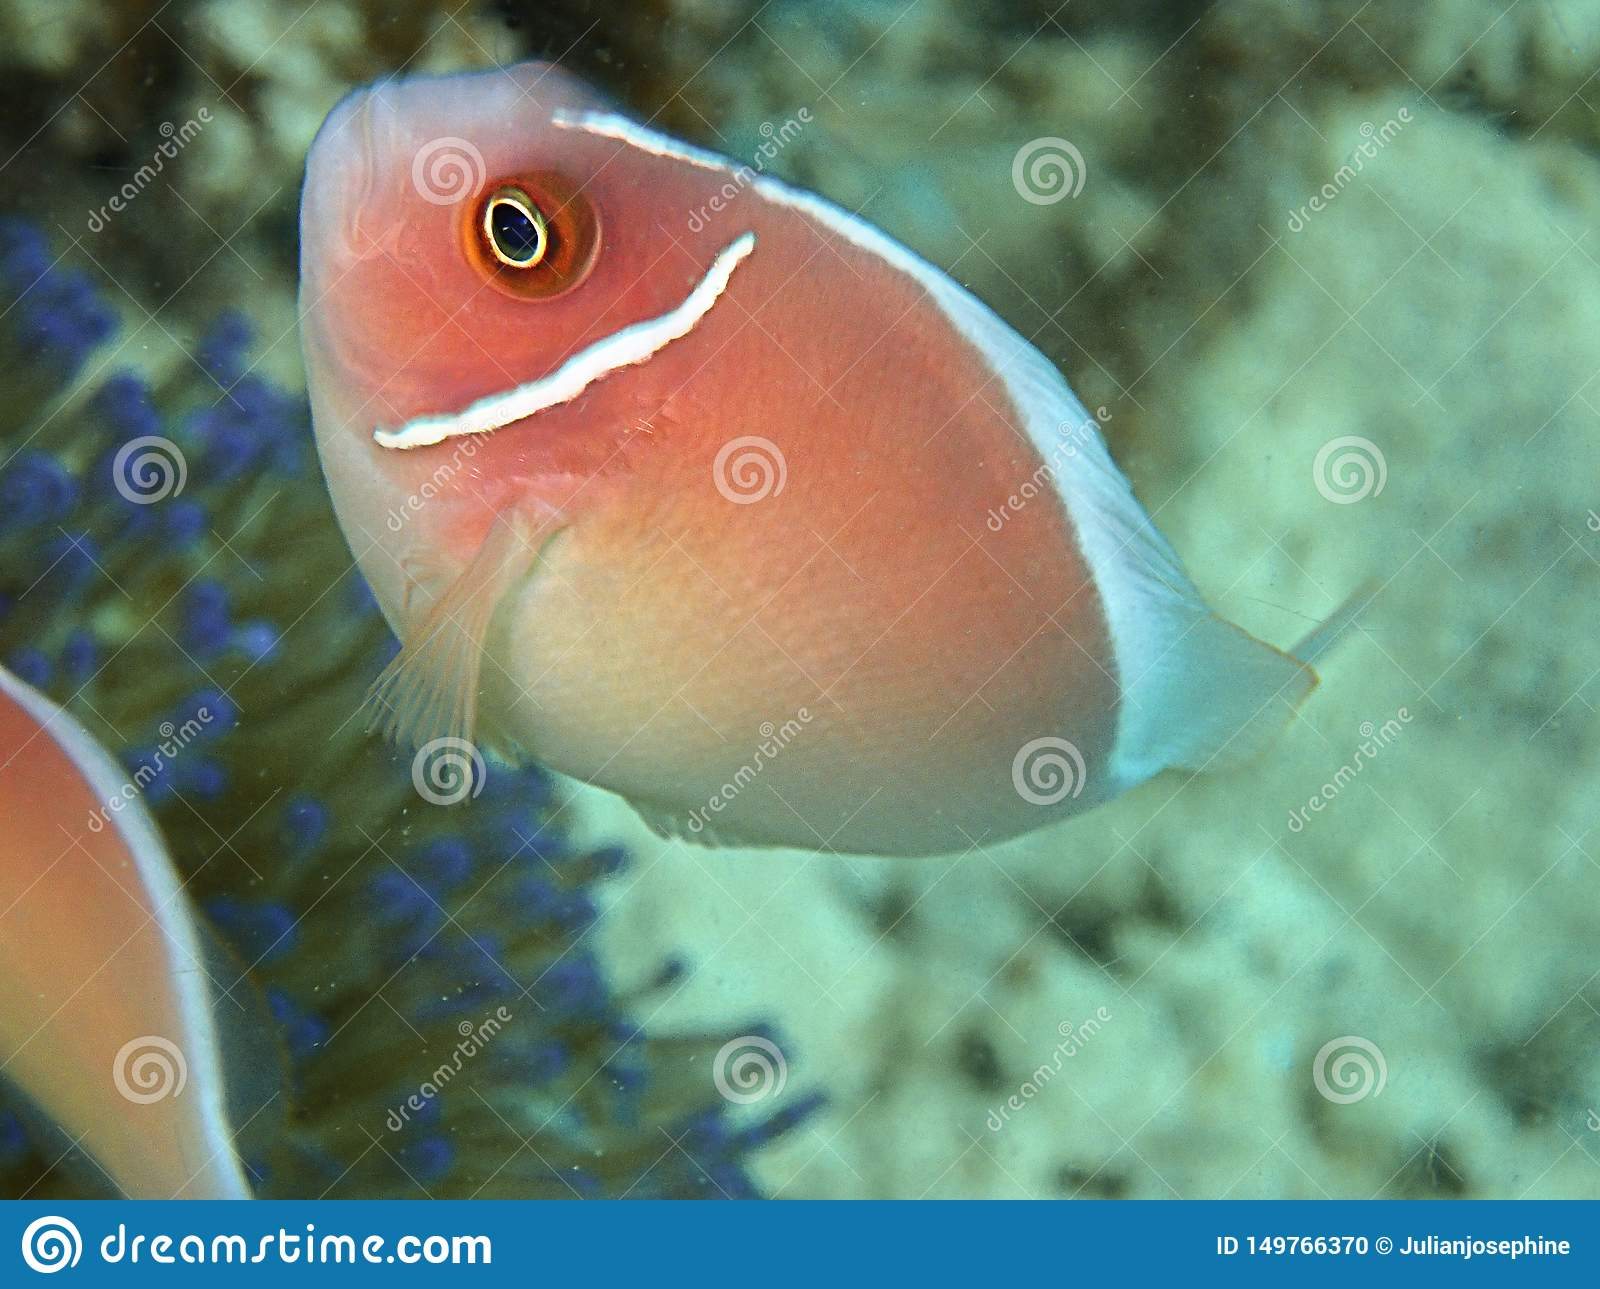 Amphiprion perideraion also known as the pink skunk clownfish or pink anemonefish, is a species of anemonefish.